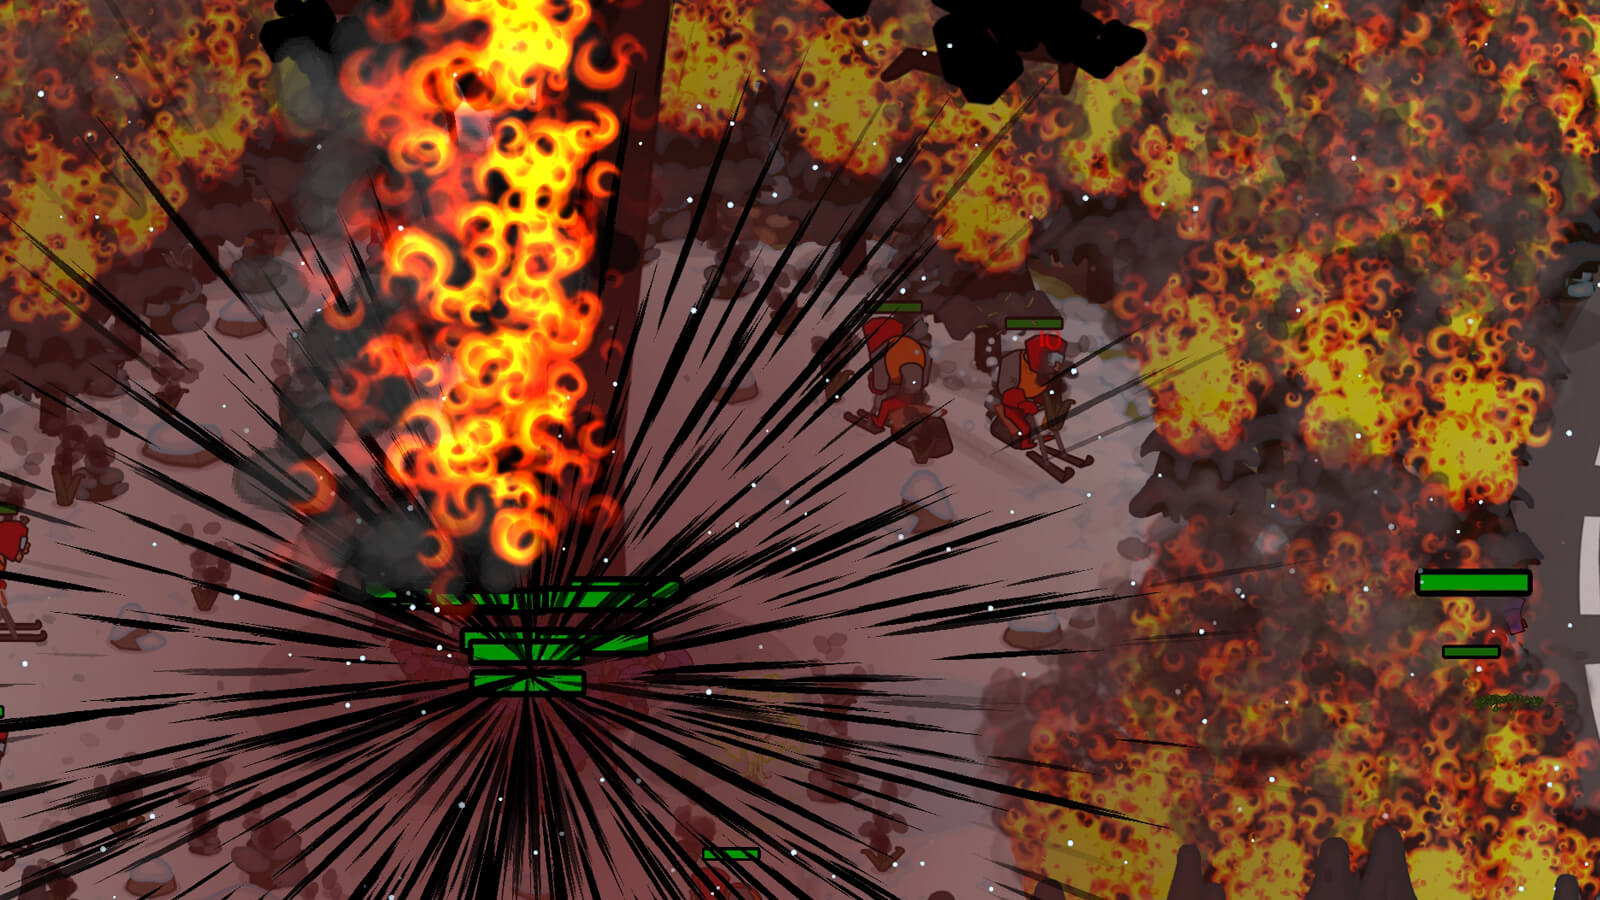 An enormous fiery explosion erupts from the base of a tree.